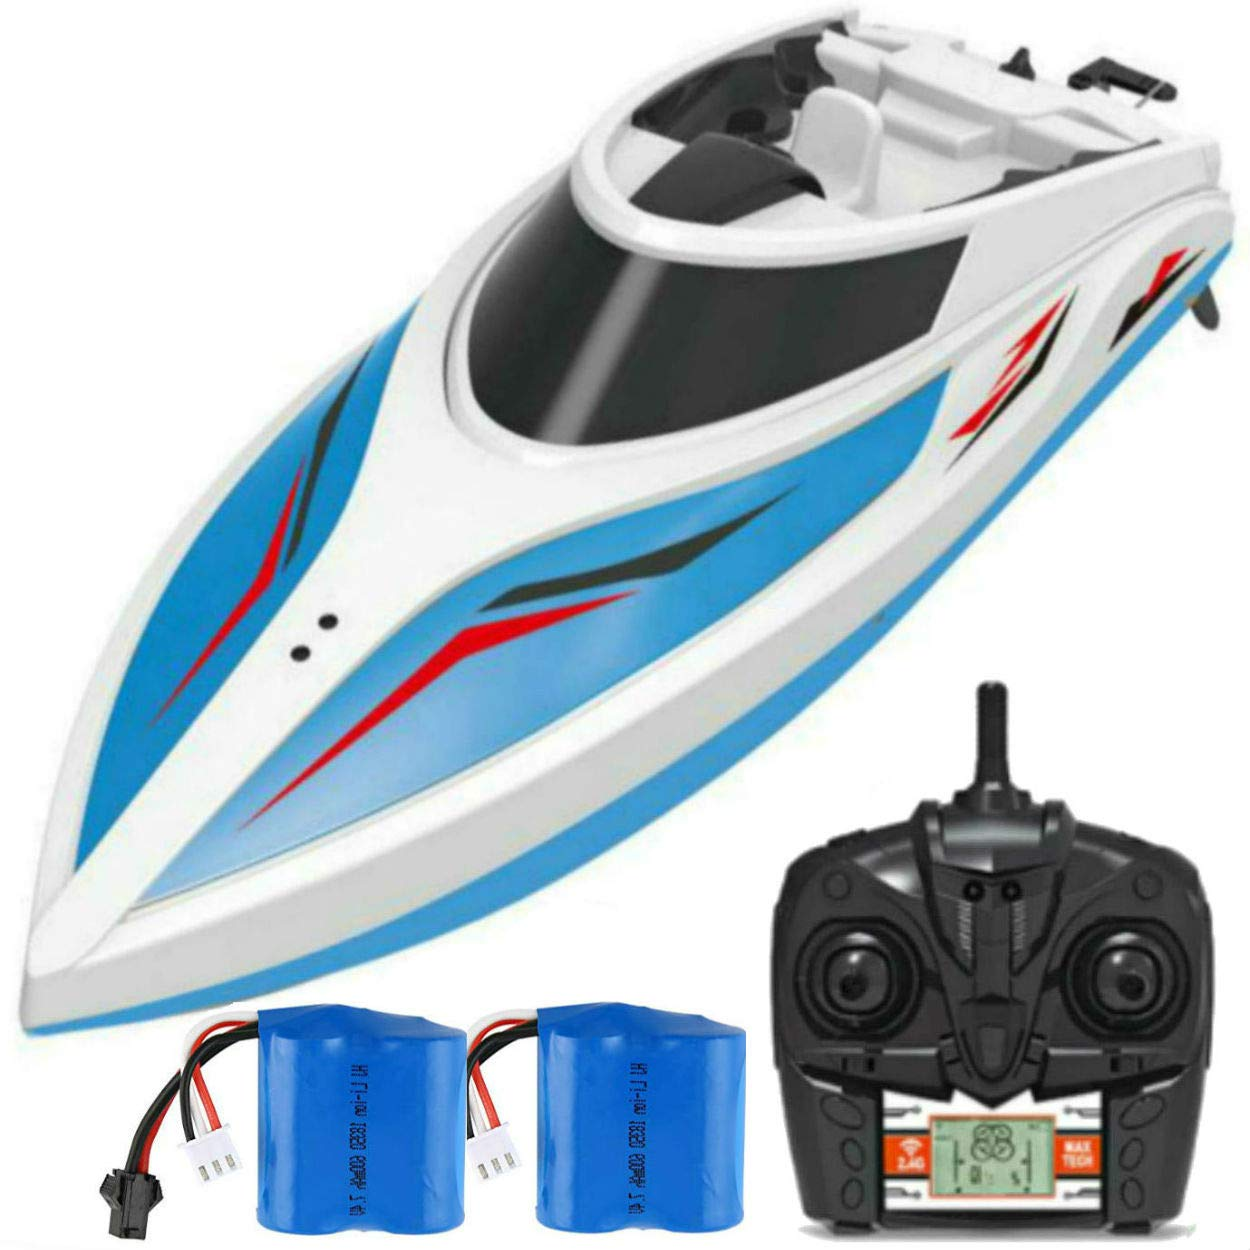 Remote Control Boats for Pools and Lakes SkyCo Rc Boat for Kids or Adults, Outdoor Adventure Pool Toys, High Speed Remote Control Boat Toy for Boys and Girls BONUS Extra Battery by SKYCO